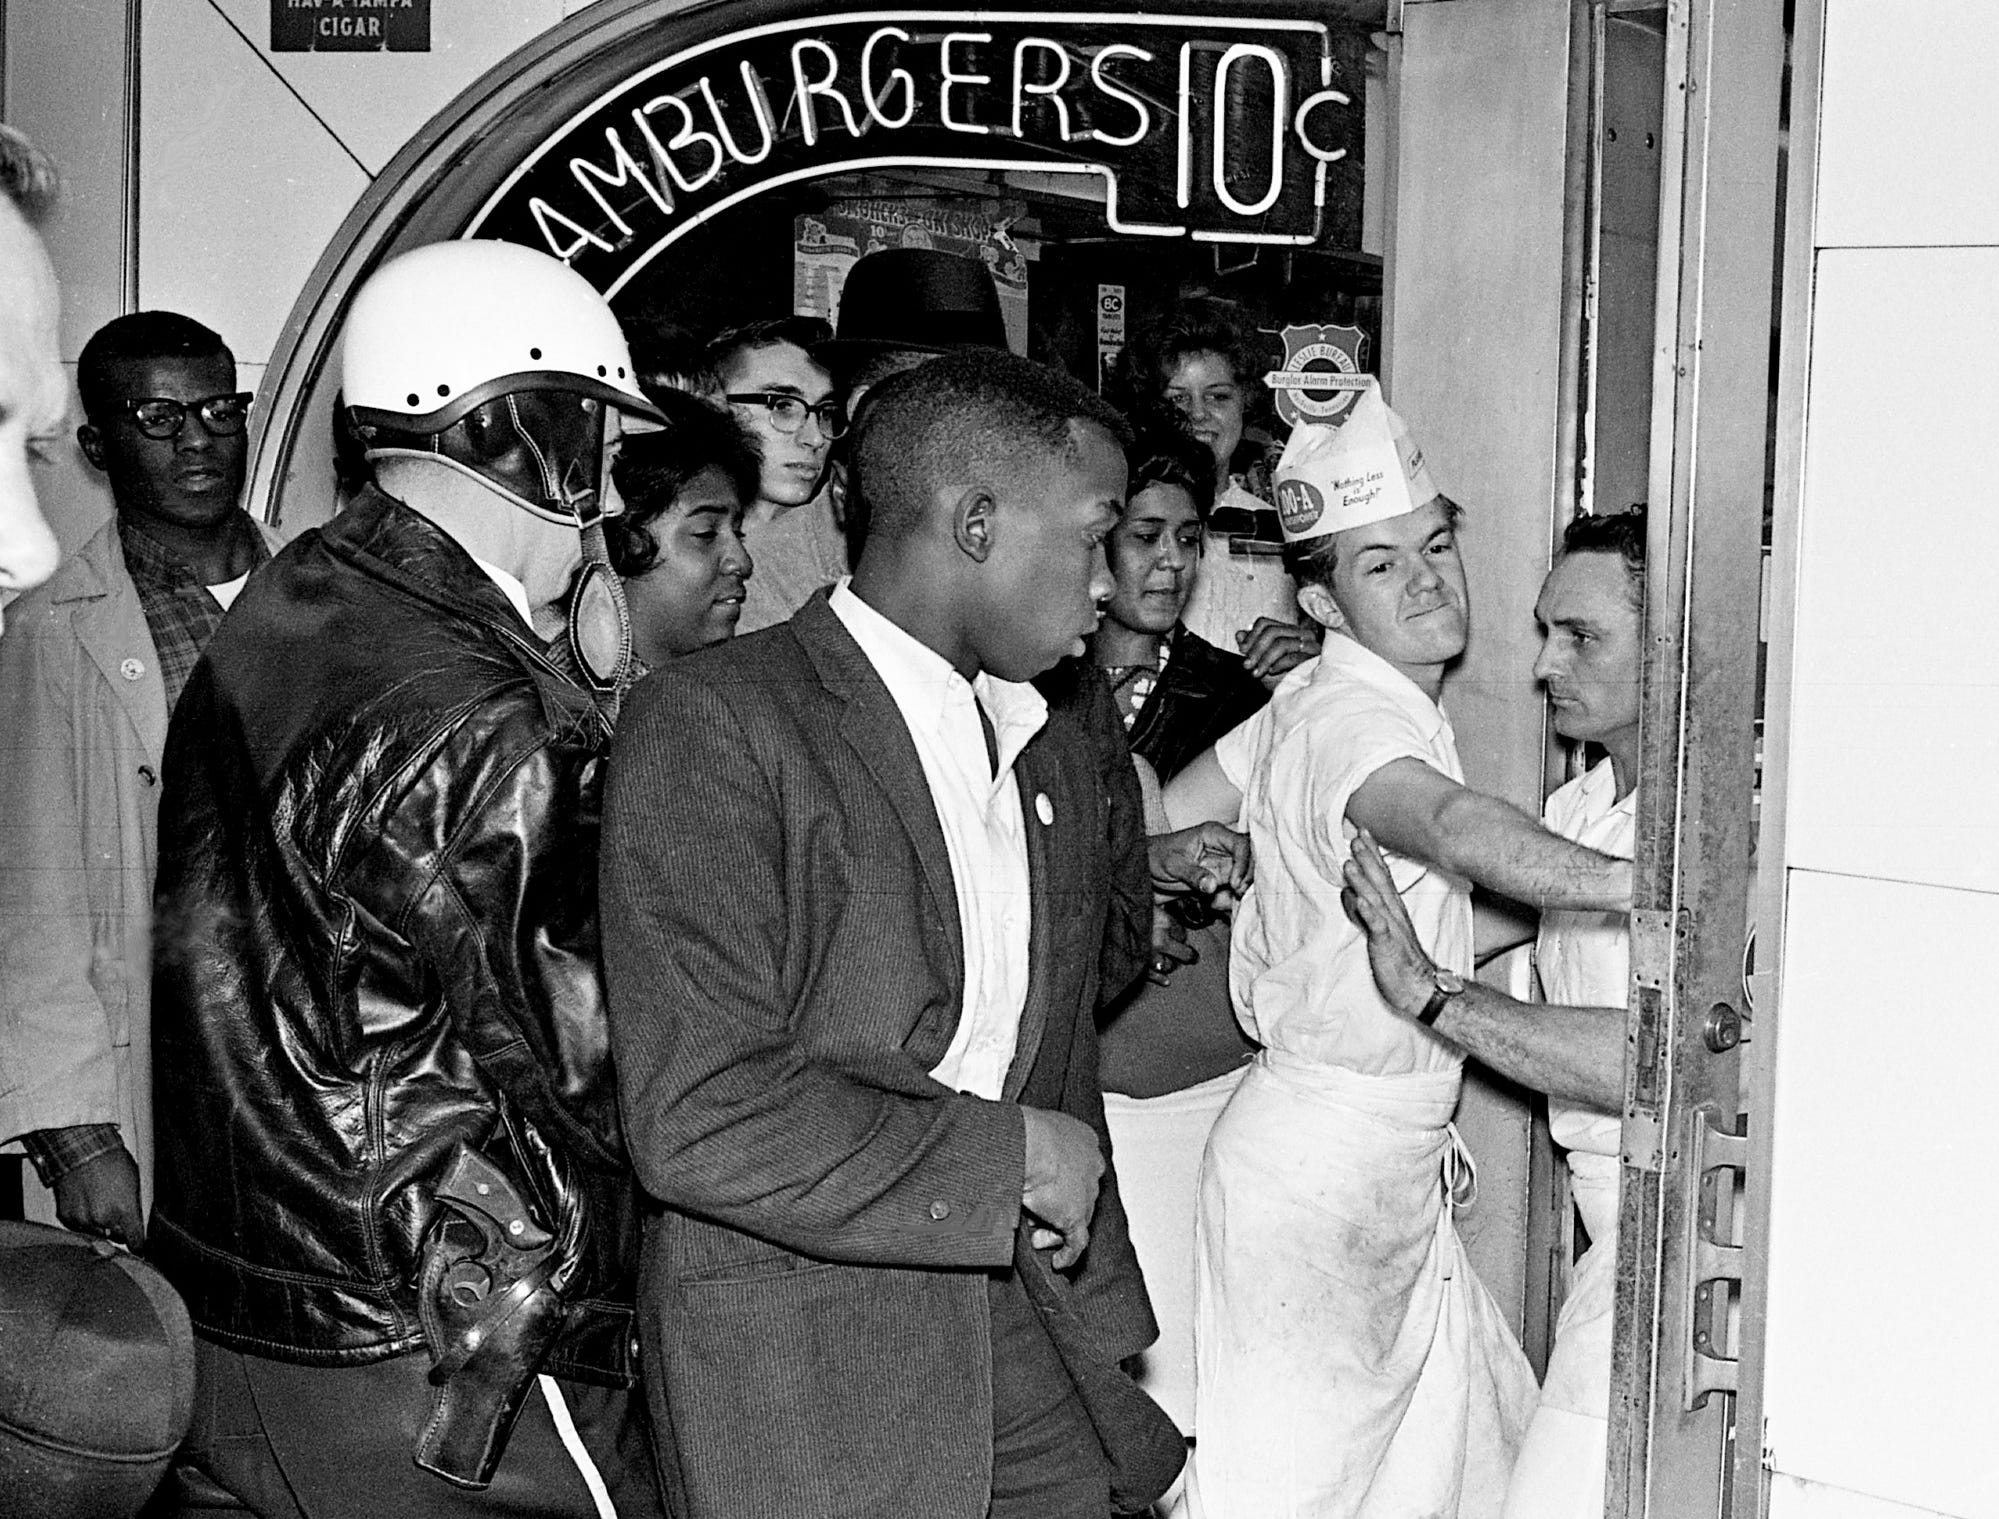 Two employees of Herschel's Tic Toc restaurant, right, form a human barricade to block sit-in demonstrators, including local leader John Lewis, center, from entering the Church Street establishment Nov. 24, 1962. Nashville officers moved in quickly to quell a series of incidents throughout the two-hour sit-ins.